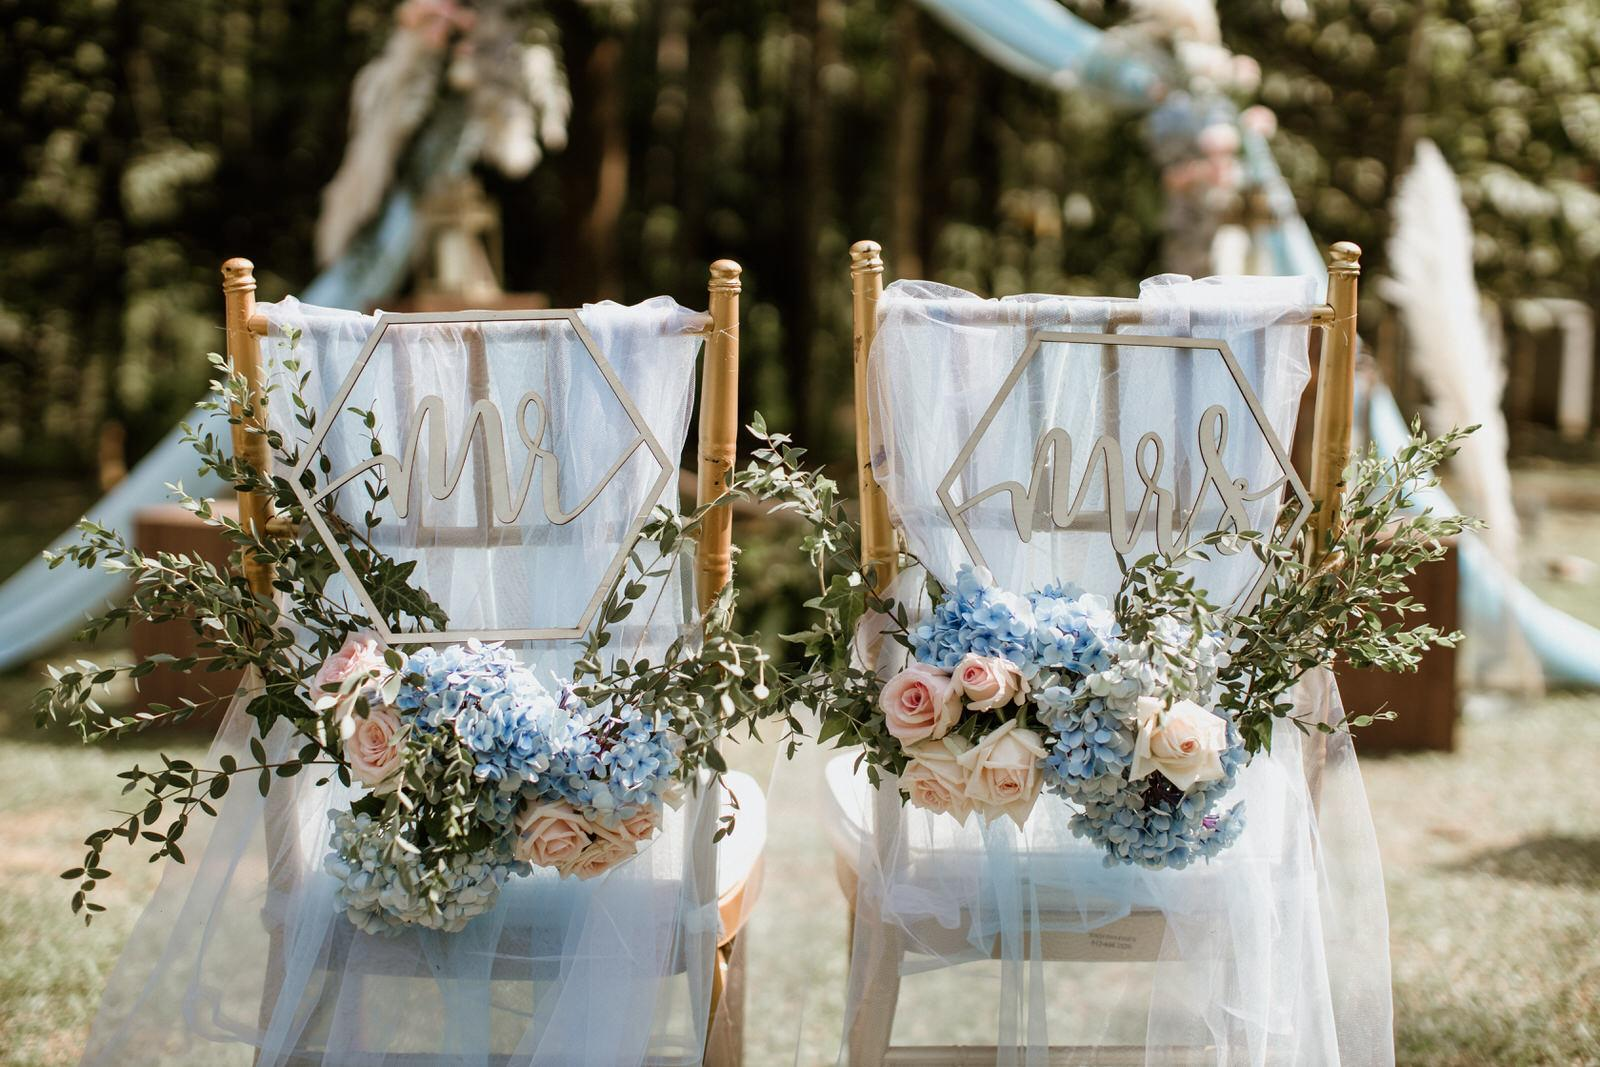 Tanarimba Rustic Garden Weding Janda baik Decoration wooden chair feather flowers signs Cliff Choong Photography